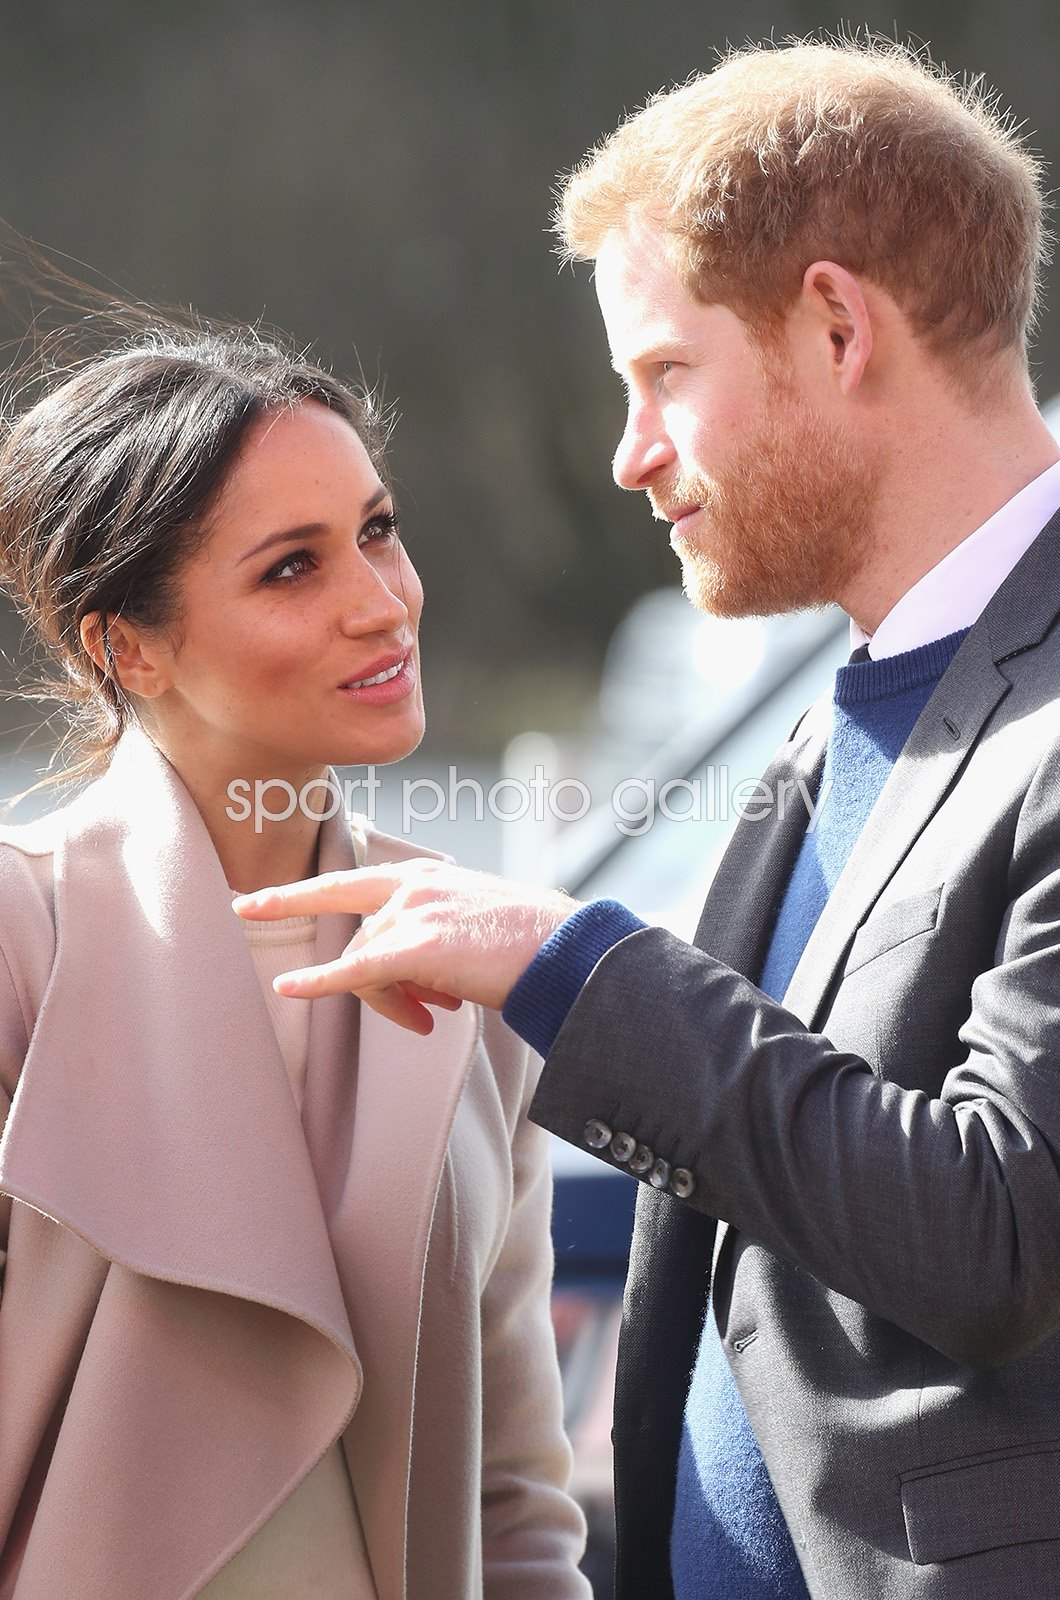 Prince Harry & Meghan Markle Northern Ireland 2018